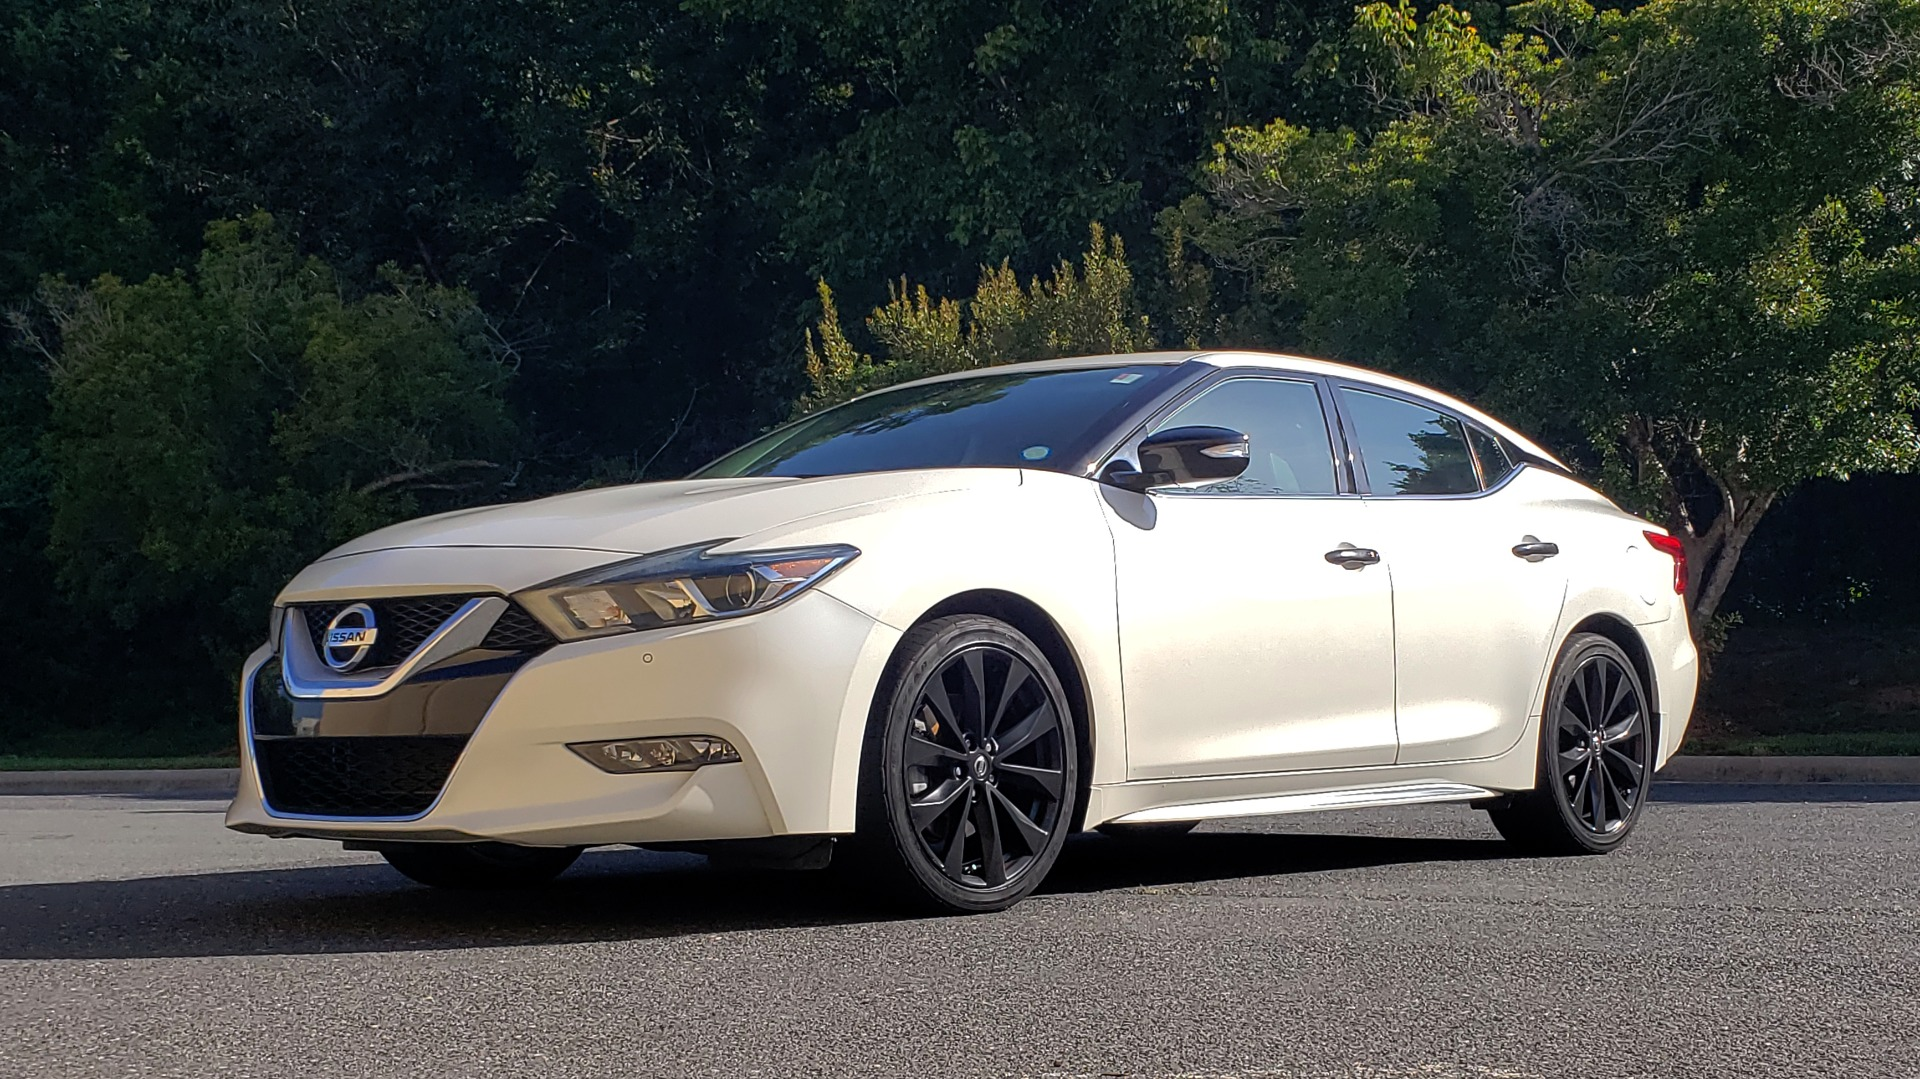 Used 2016 Nissan MAXIMA 3.5 SR / NAV / BOSE / VENT STS / CVT / REARVIEW for sale Sold at Formula Imports in Charlotte NC 28227 9